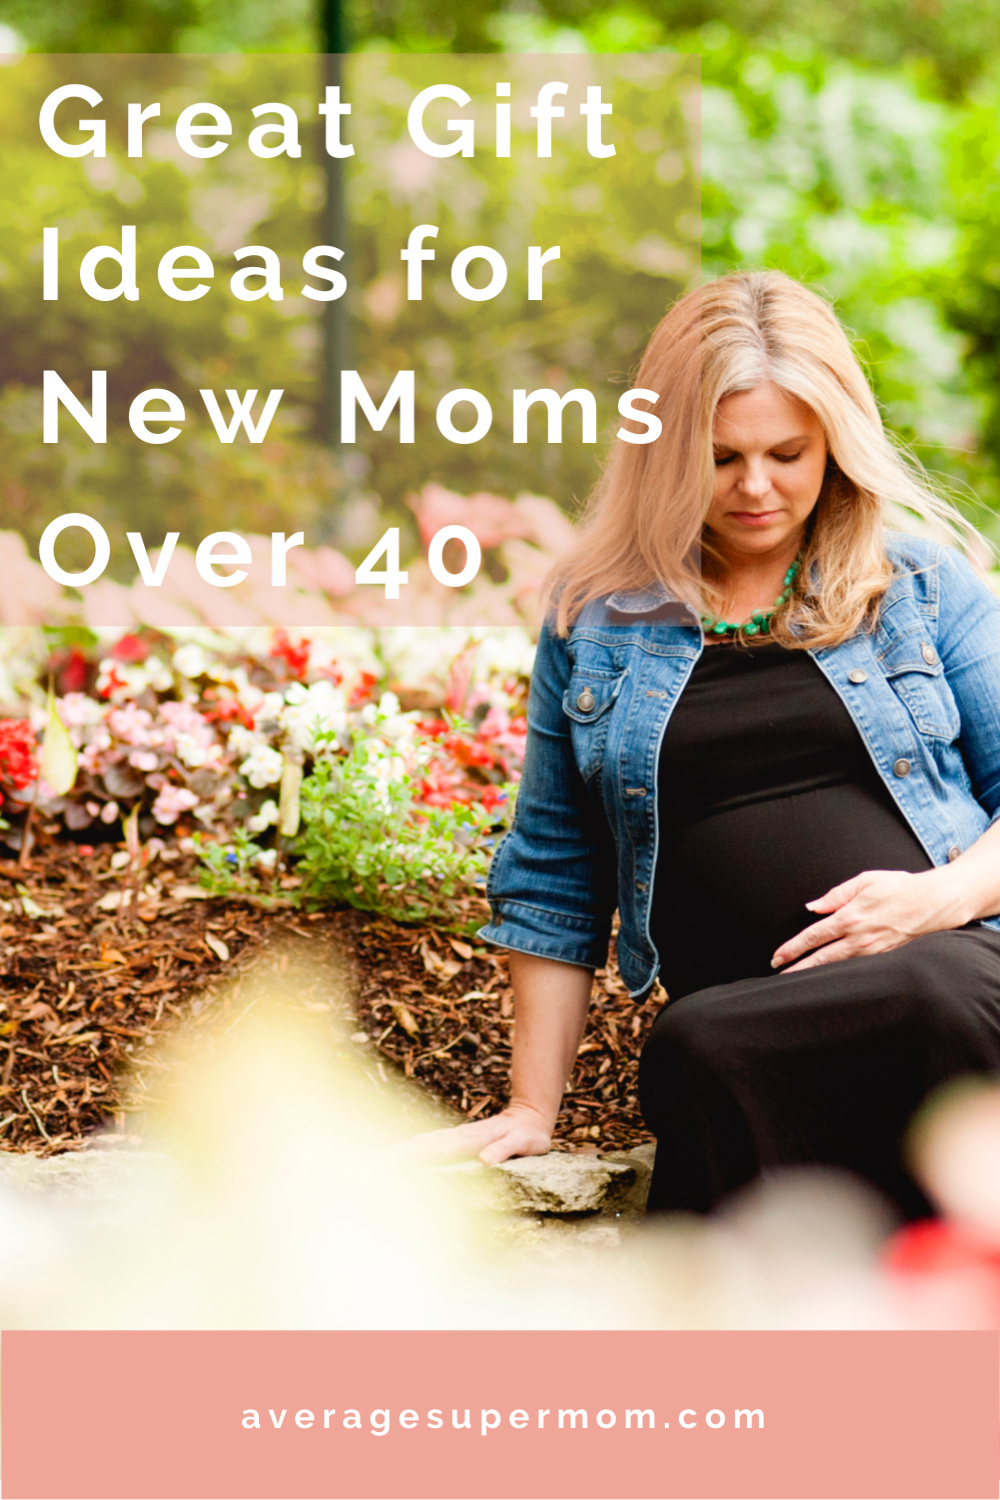 Gift Ideas for New Moms Over 40